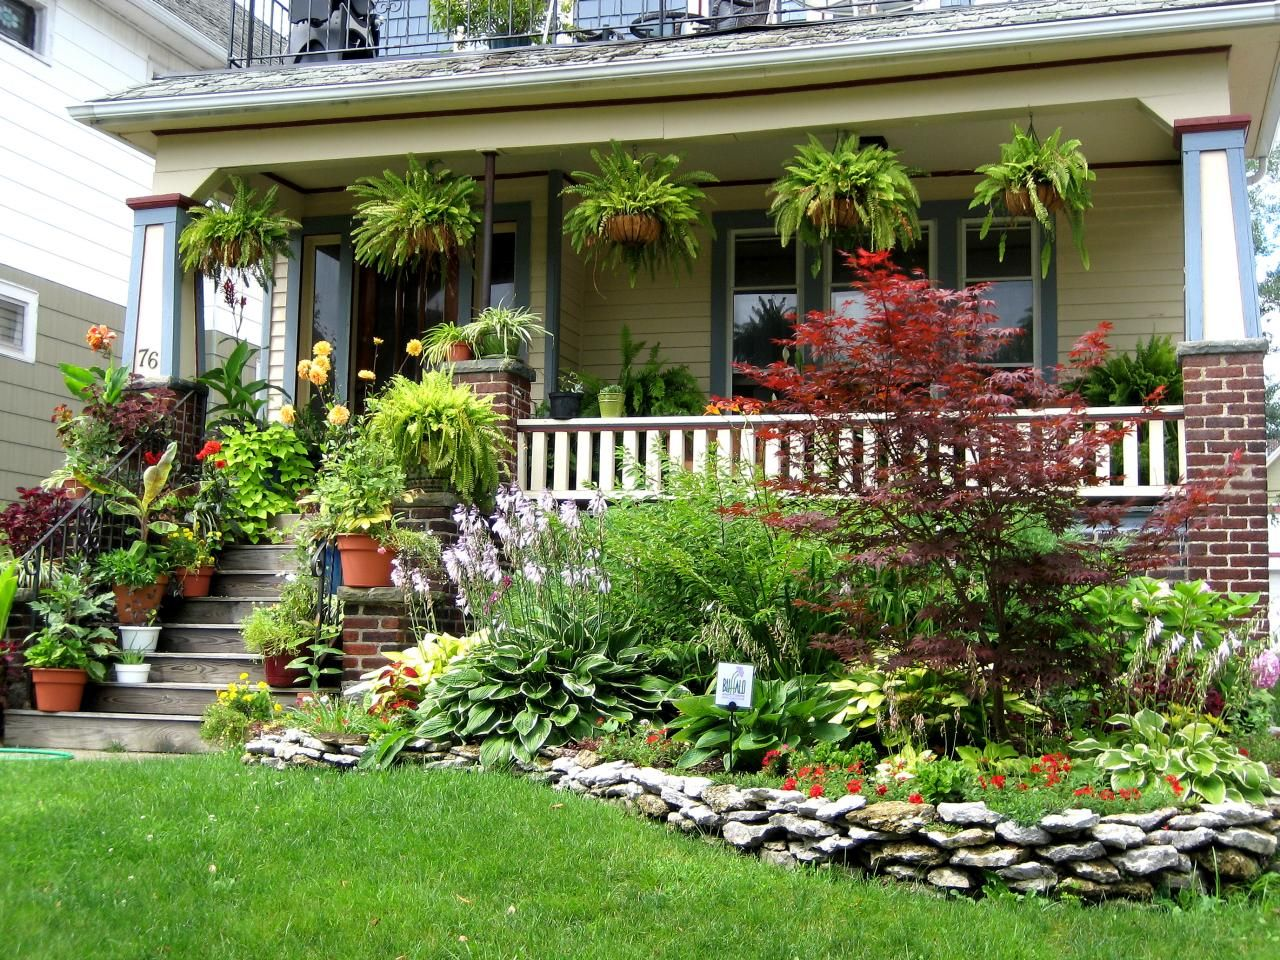 Gardens We Love From Rate My Space Porch Landscaping Front Porch Garden Front Porch Landscape Landscaping ideas for house with front porch